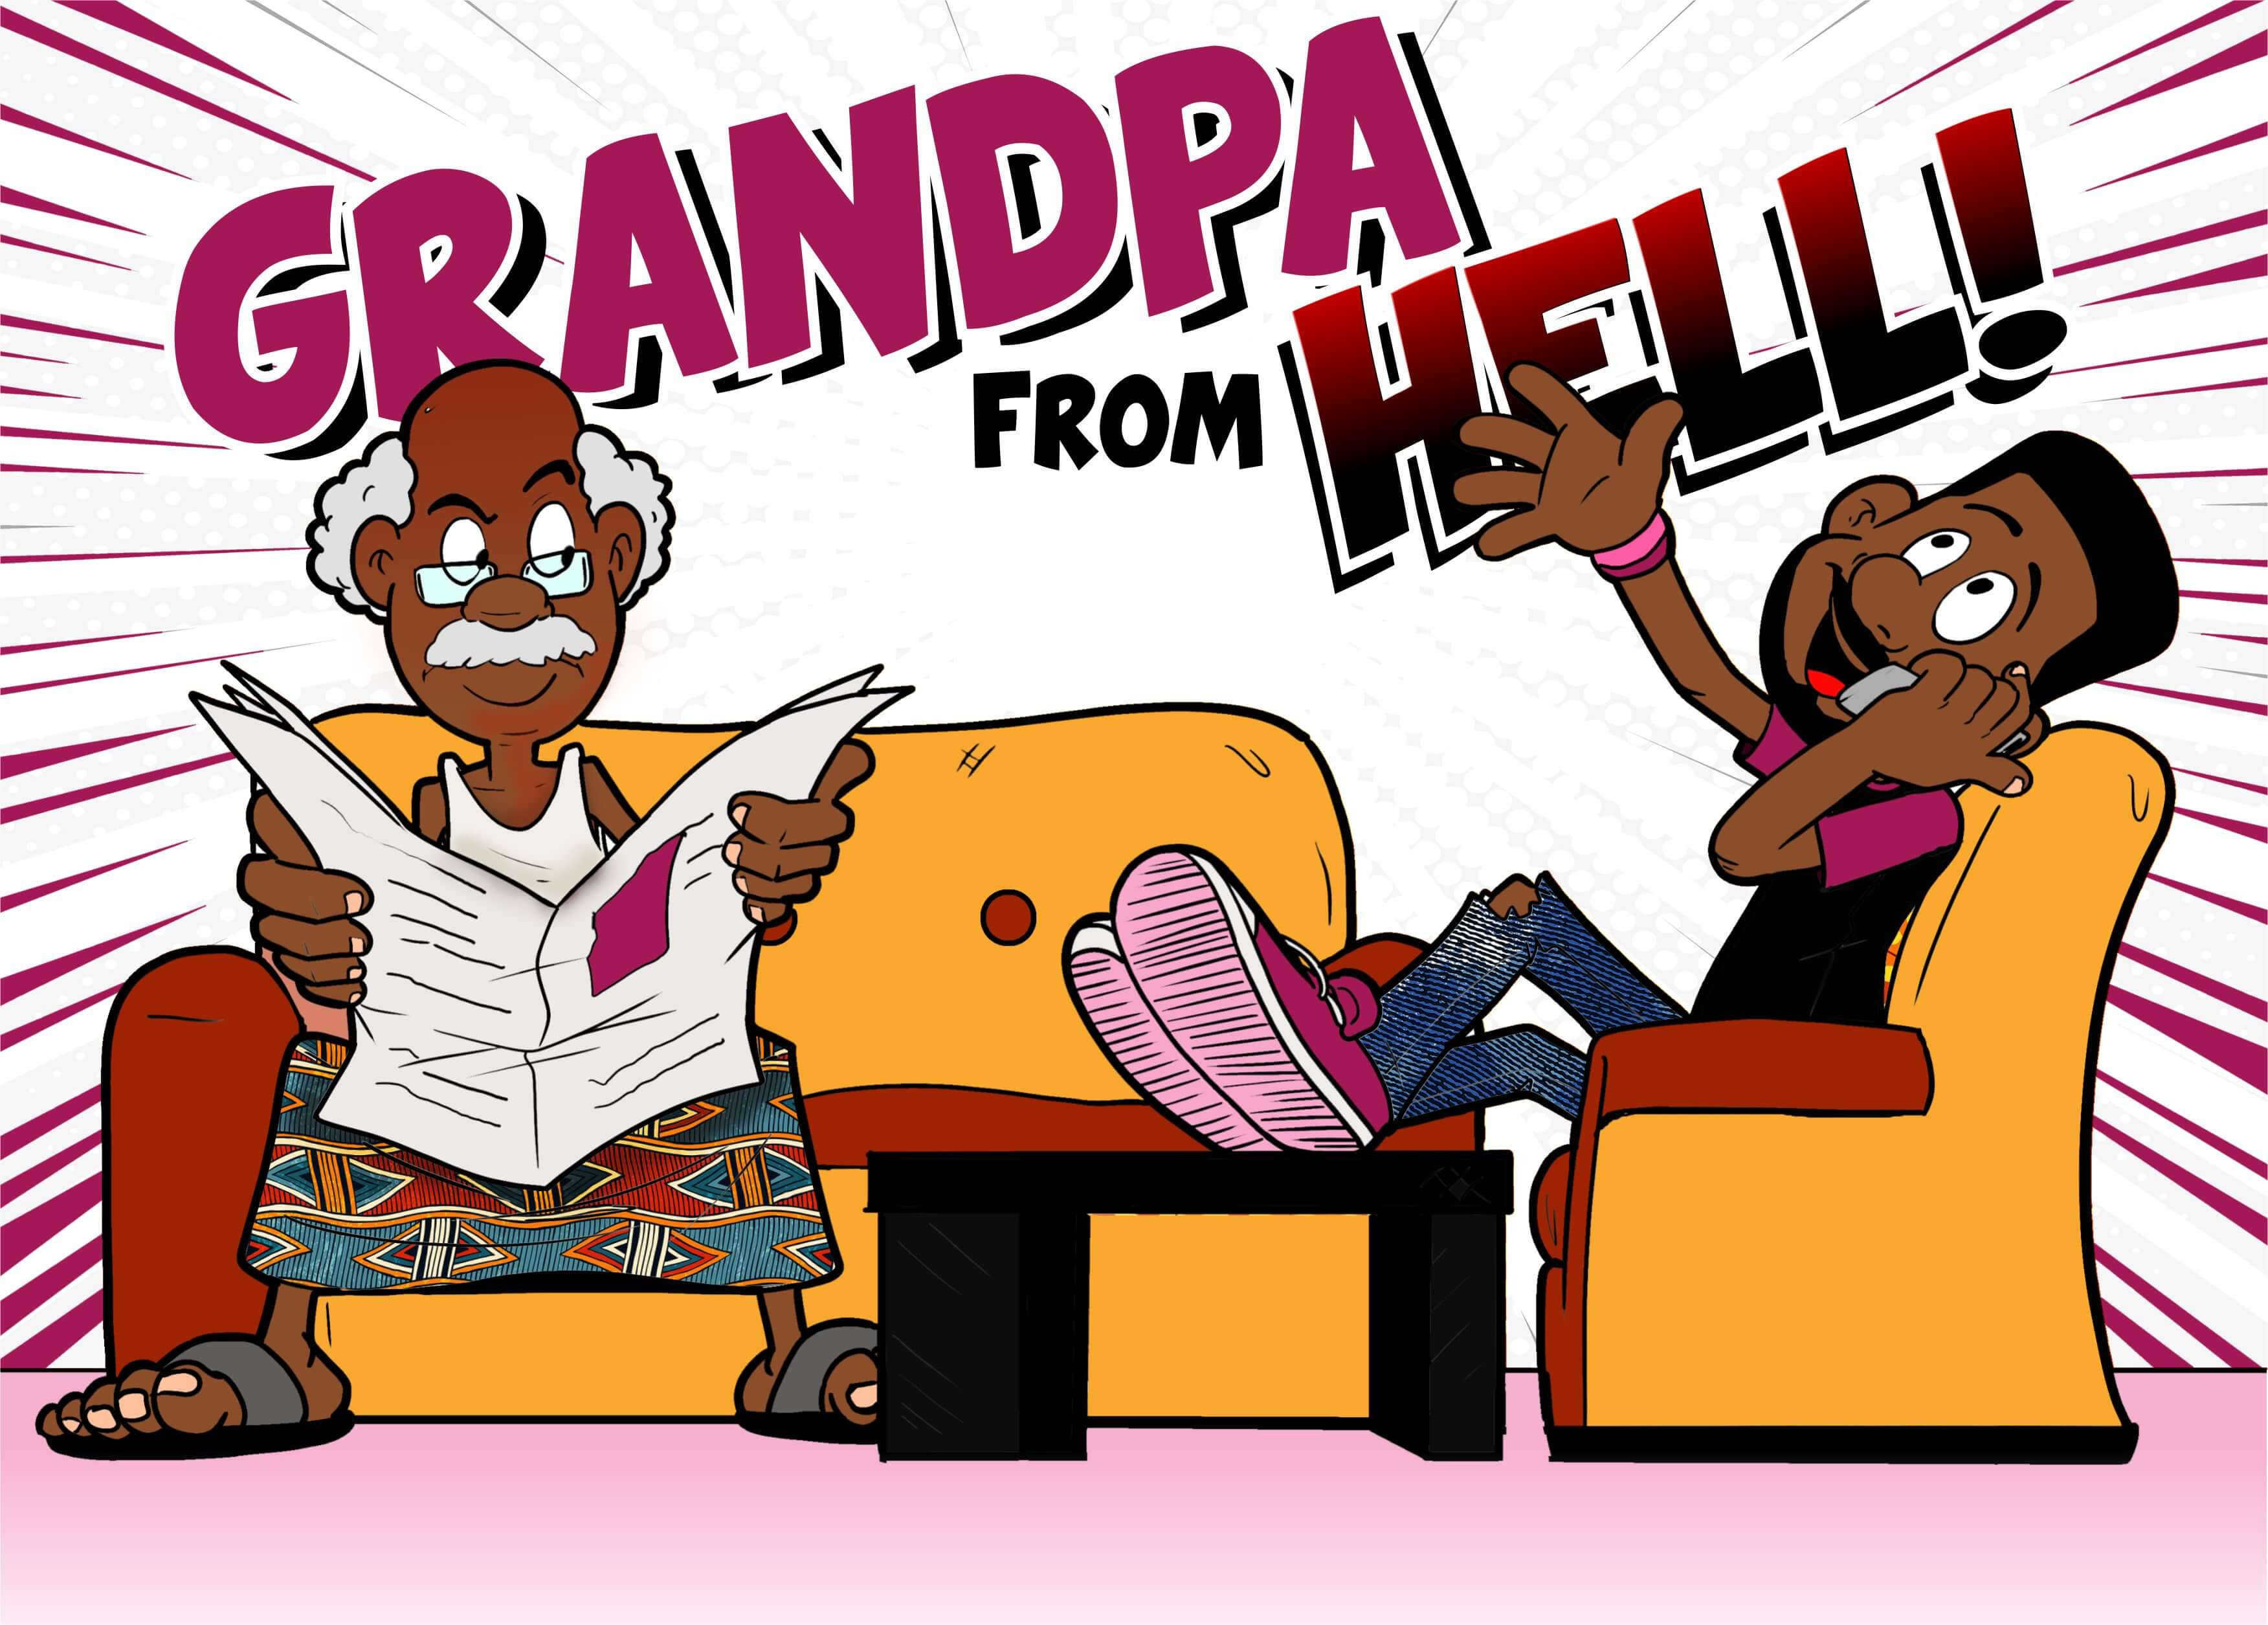 Grandpa from 'hell'